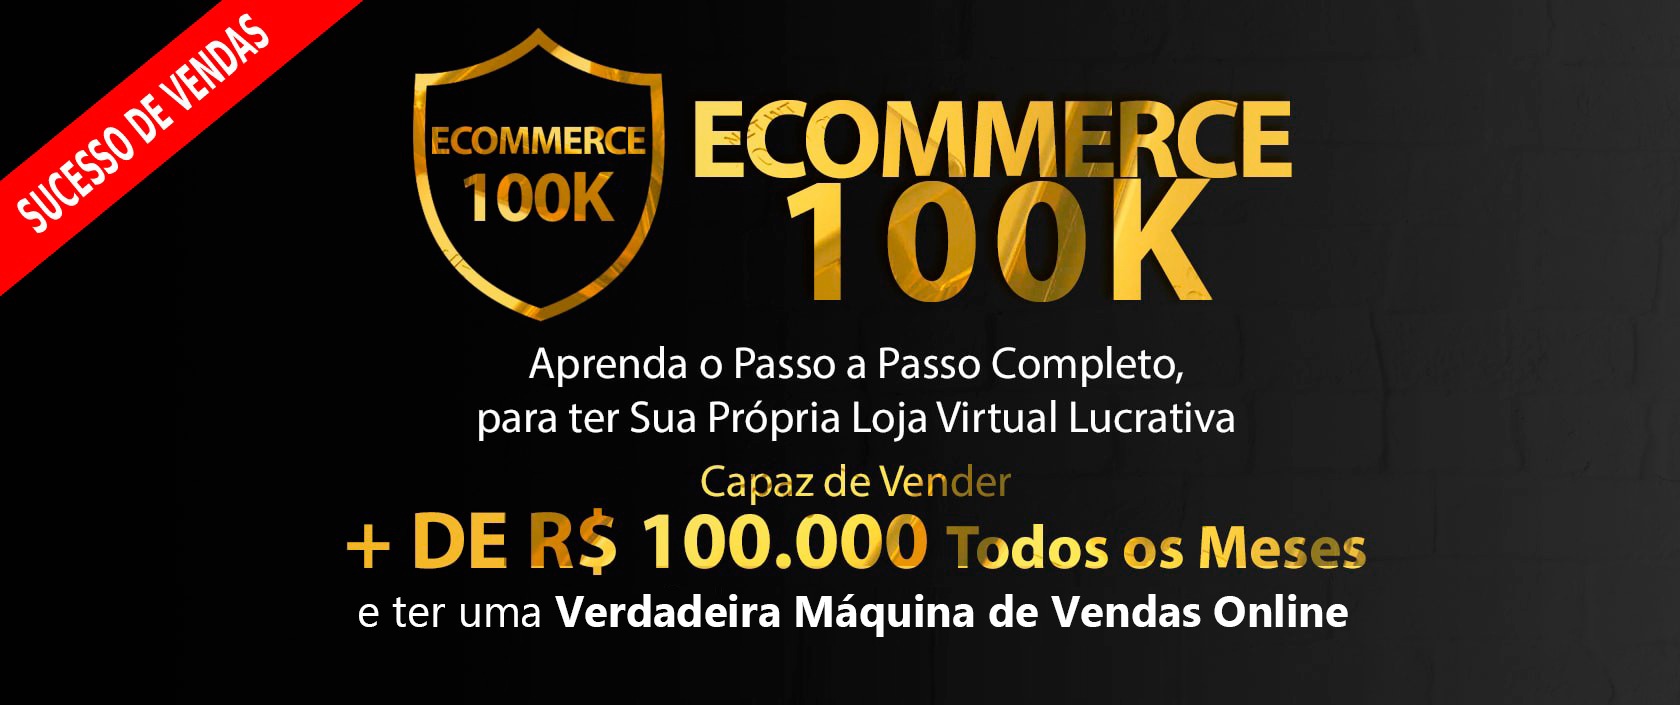 Curso de E-Commerce